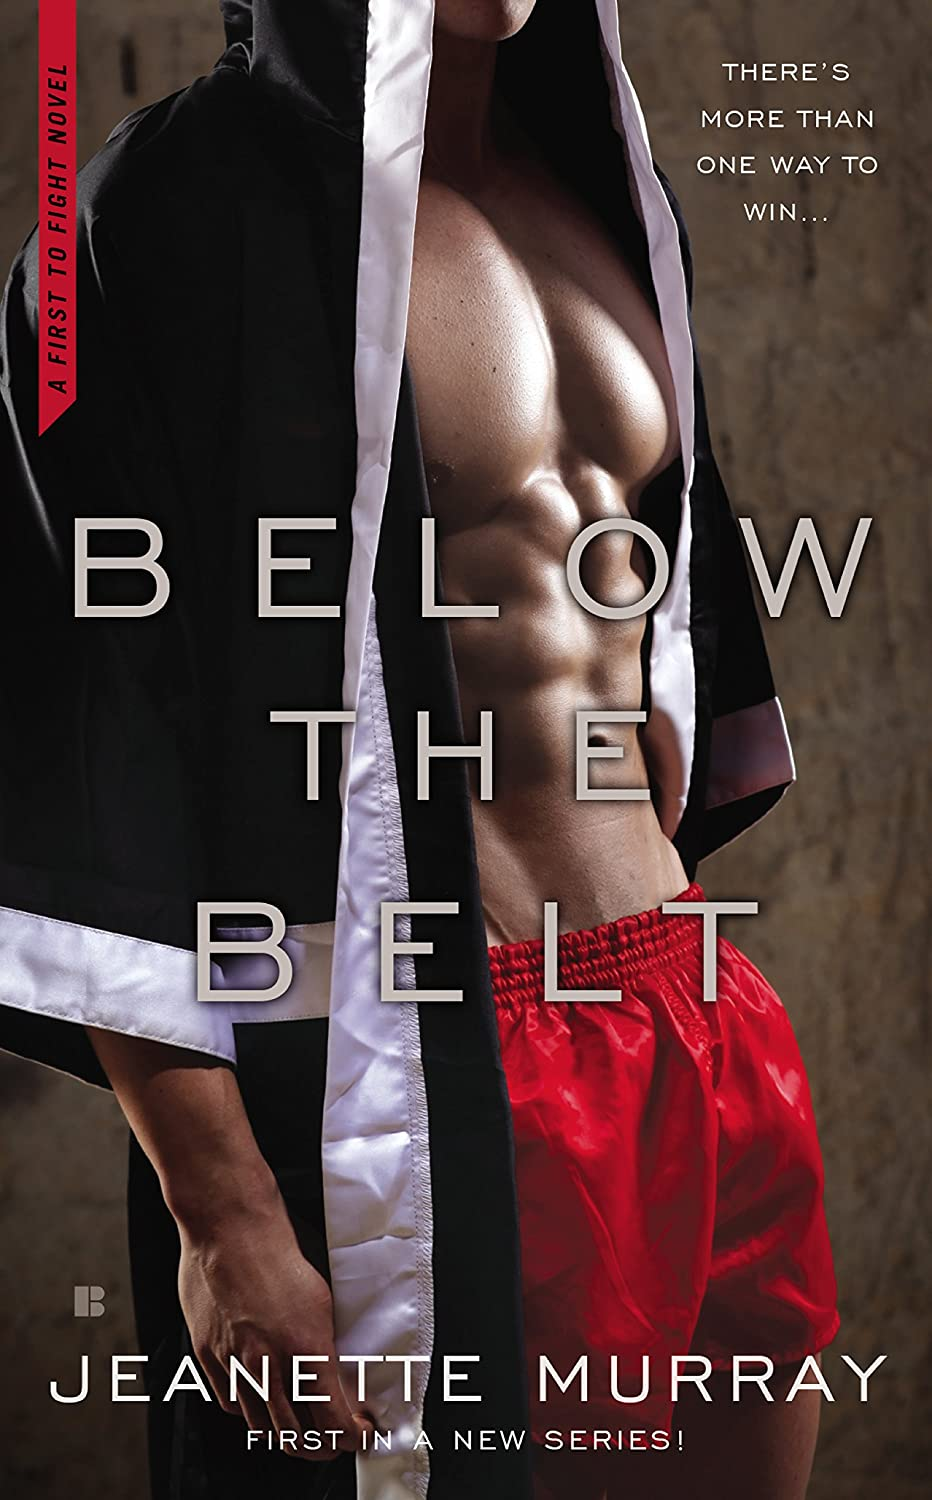 Below the Belt – Jeanette Murray – 4 Stars